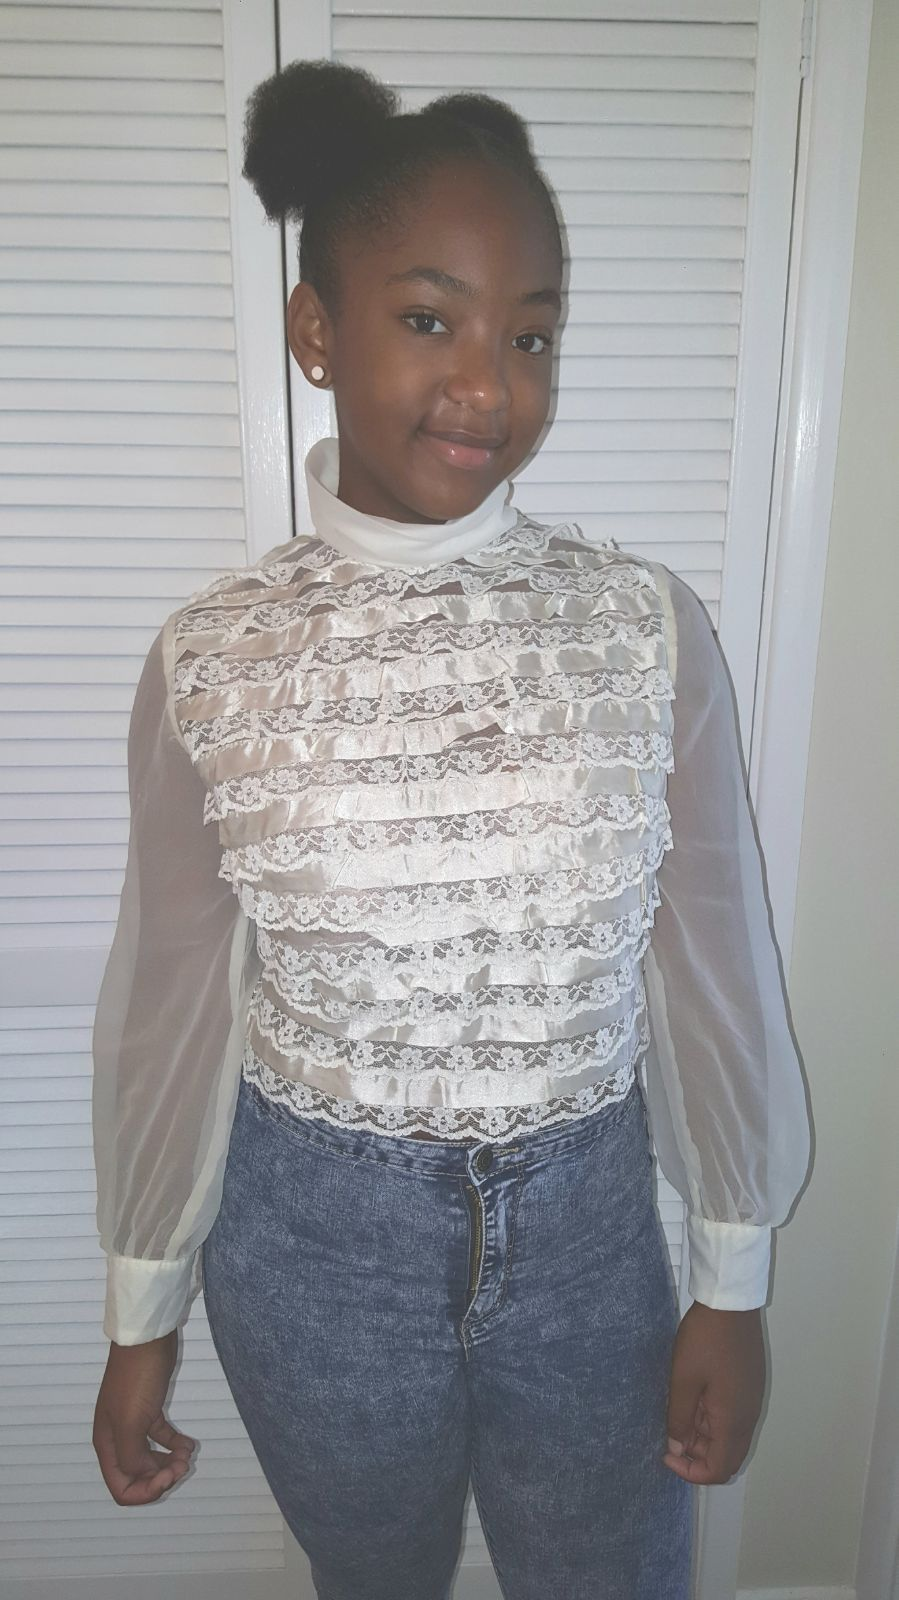 Alisons teenage daughter, Jaya, wearing her grandmothers vintage lace blouse.